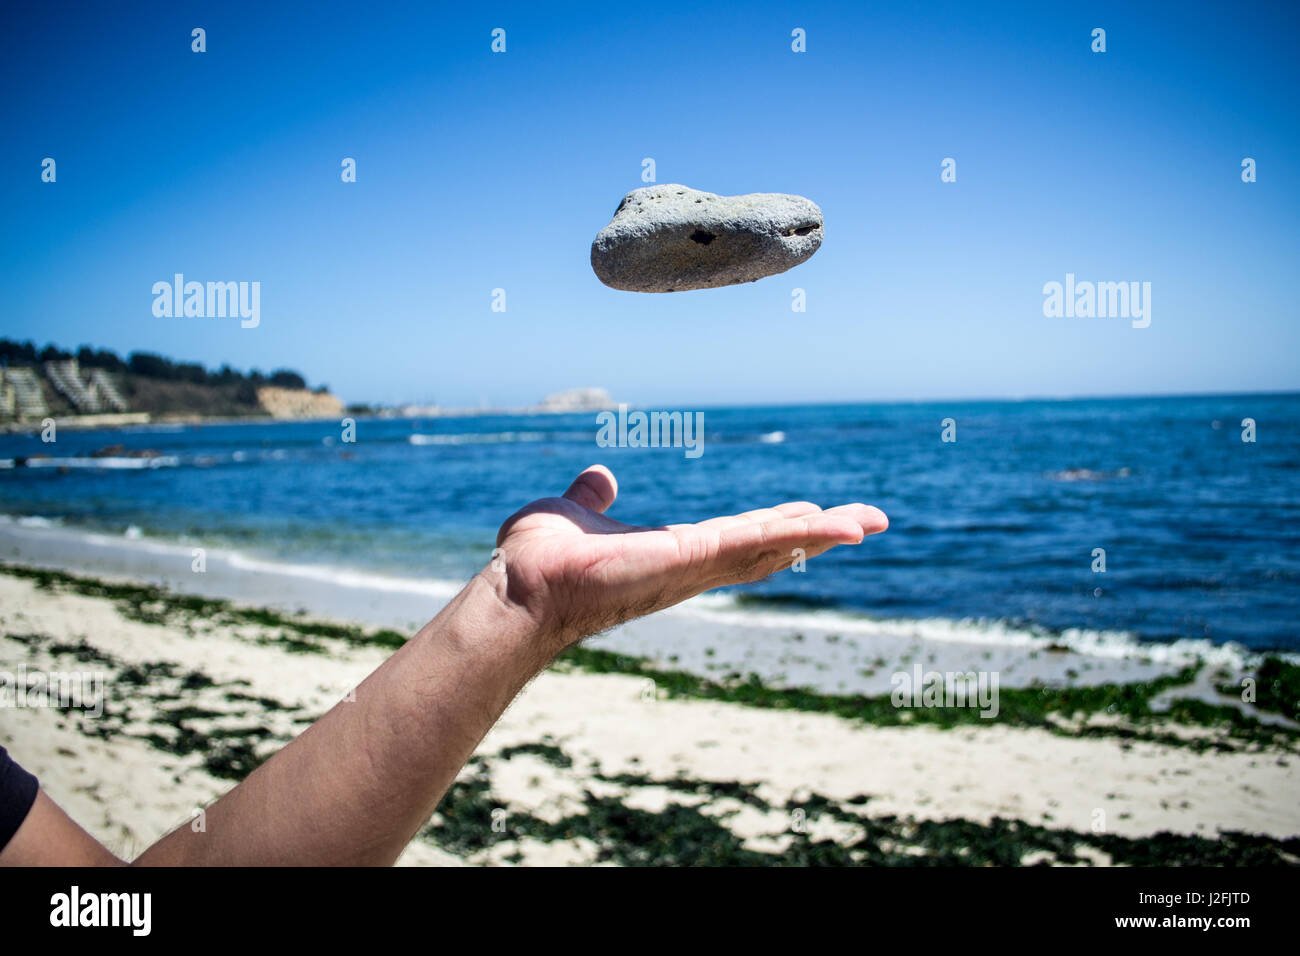 Hand Throwing Stone : Throwing a stone stock photos